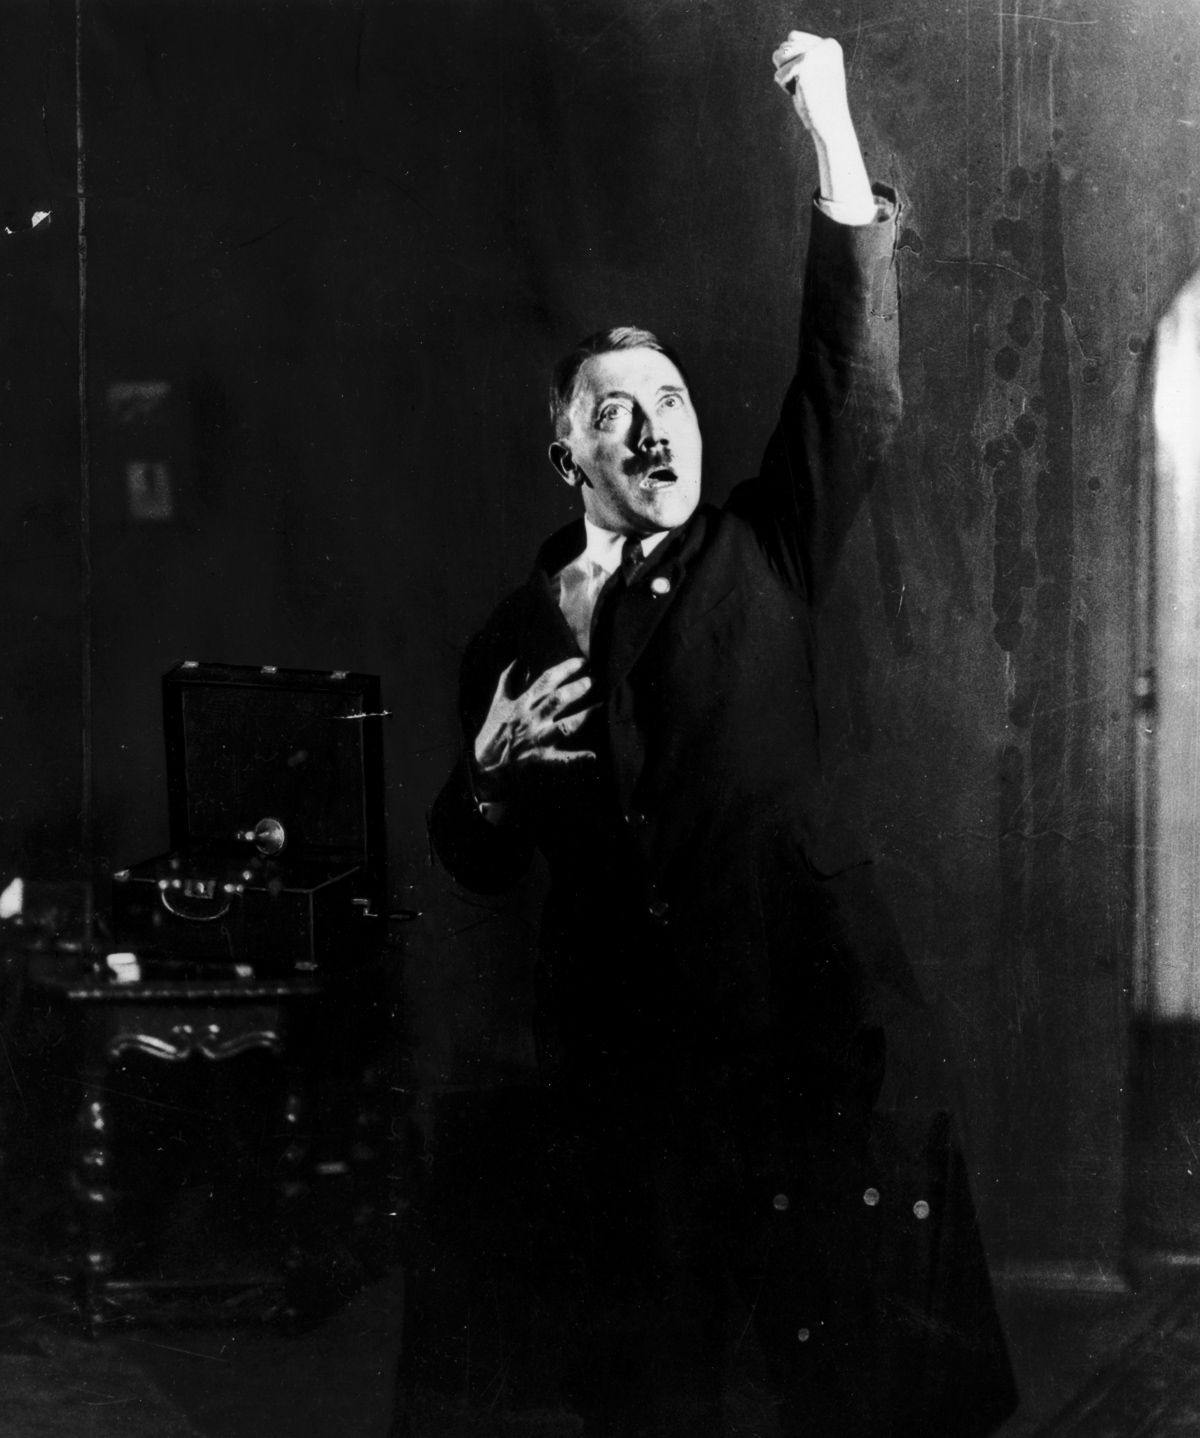 Adolf Hitler (1889 - 1945), leader of the National Socialist German Workers' Party (NSDAP), strikes a pose for photographer Heinrich Hoffmann whilst listening to a recording of his own speeches. After seeing the photographs, Hitler ordered Hoffmann to destroy the negatives, but he disobeyed. (Photo by Heinrich Hoffmann/Getty Images)